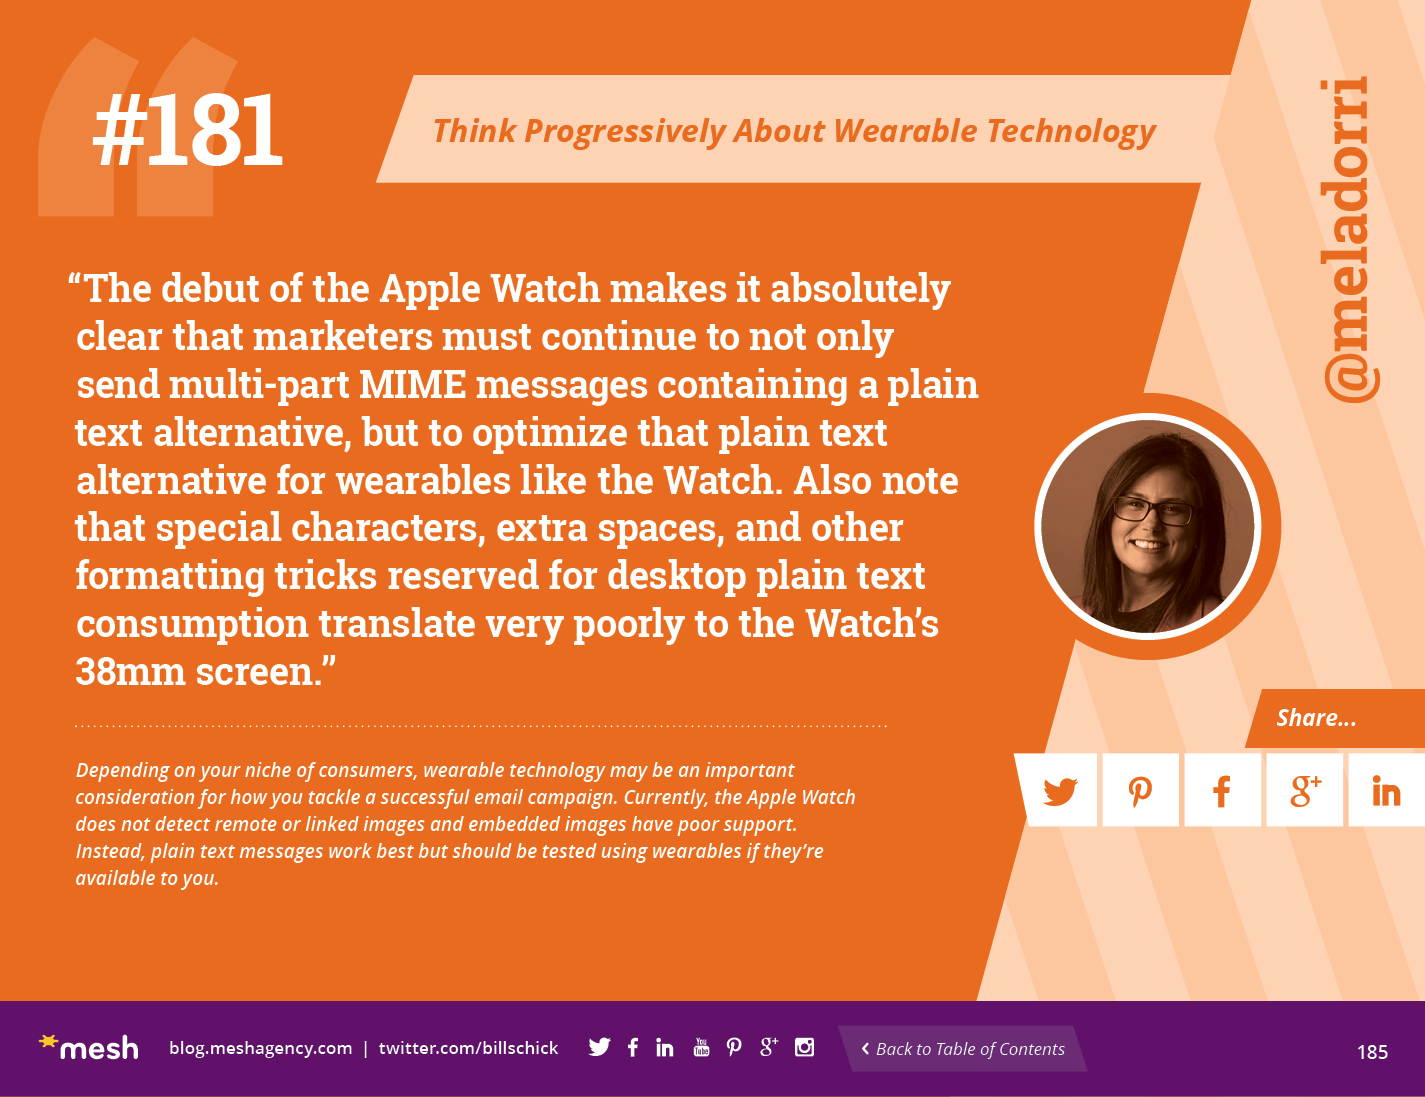 #181: Think Progressively About Wearable Technology via @meshagency #365EmailTips